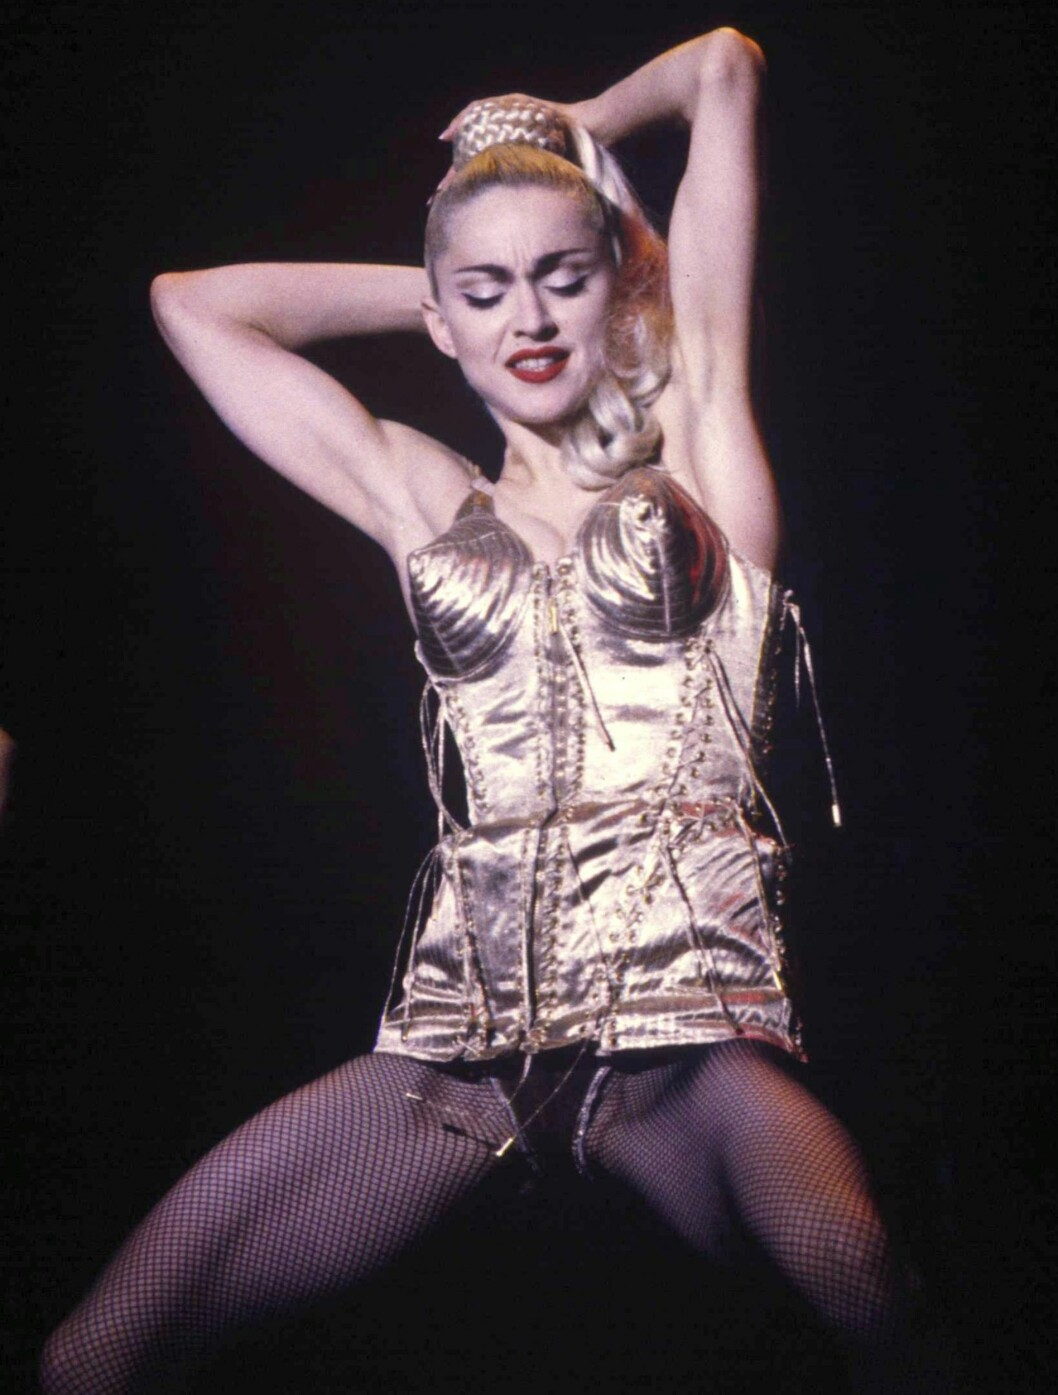 Madonna turnerte verden rundt i 1990 med sin «Blond Ambition World Tour». Her fikk fansen høre hits som «Like a Virgin», «Papa Don't Preach» og «Vogue».